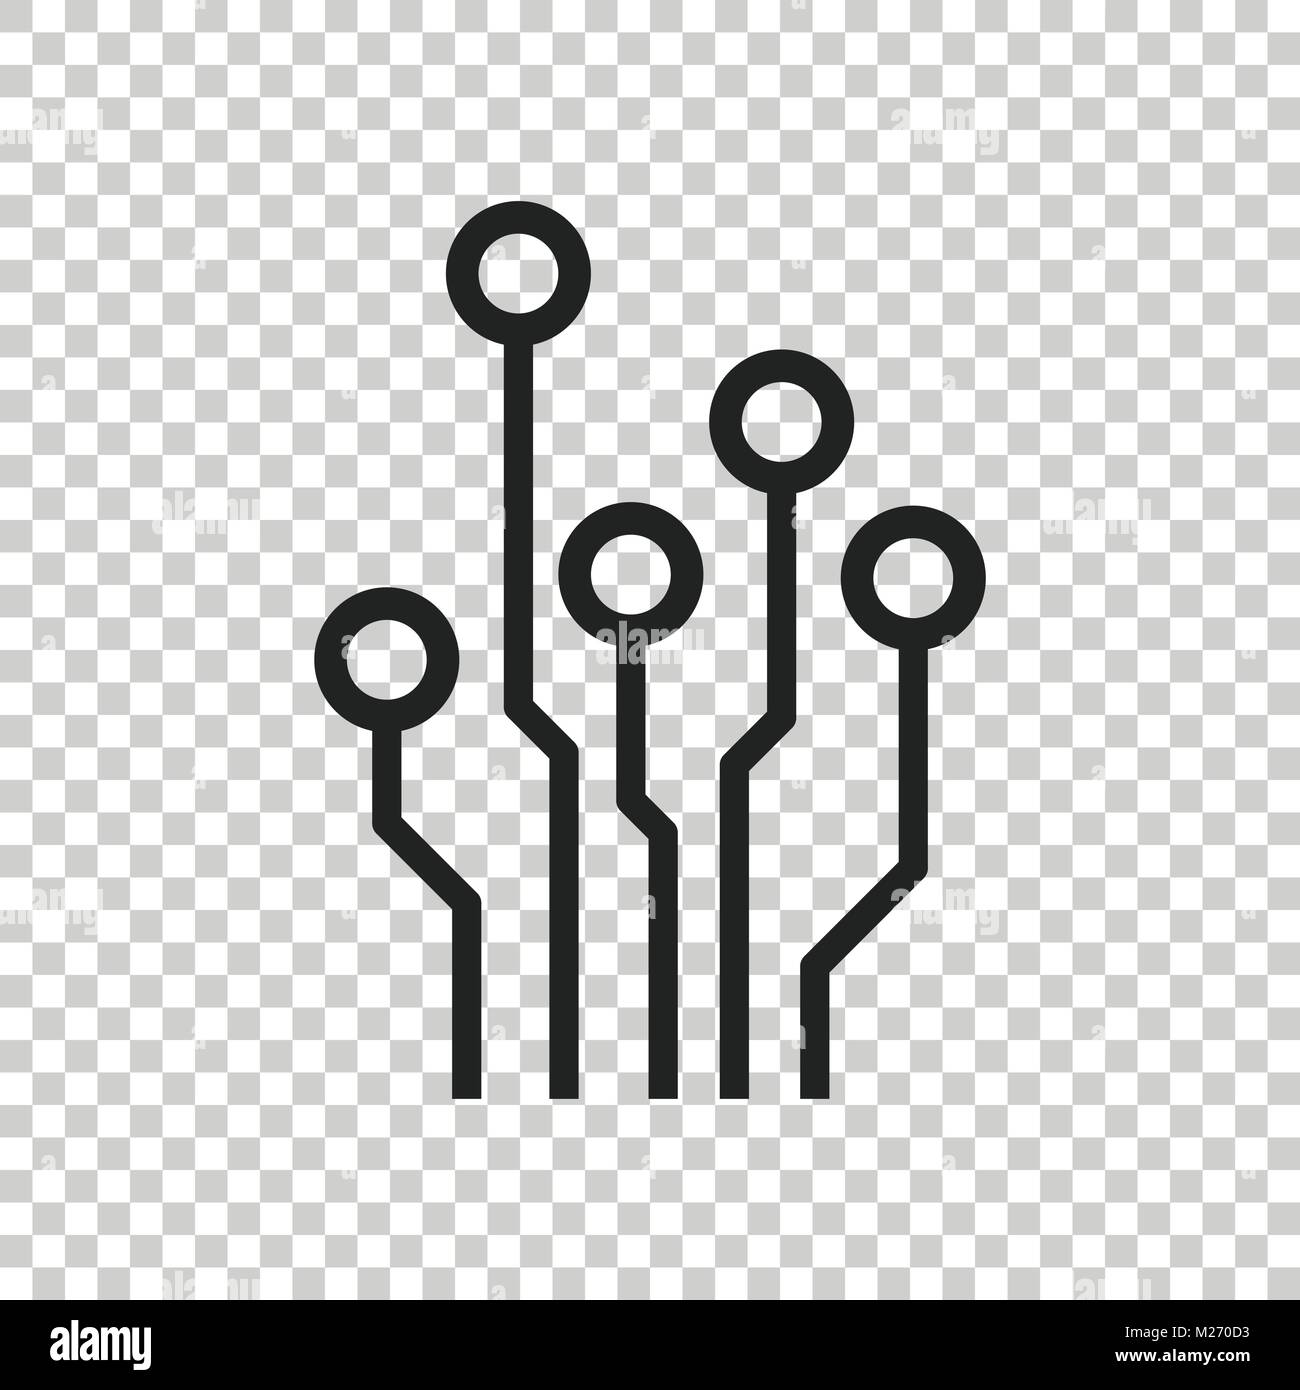 Round Circuit Board Photos & Round Circuit Board Images - Alamy